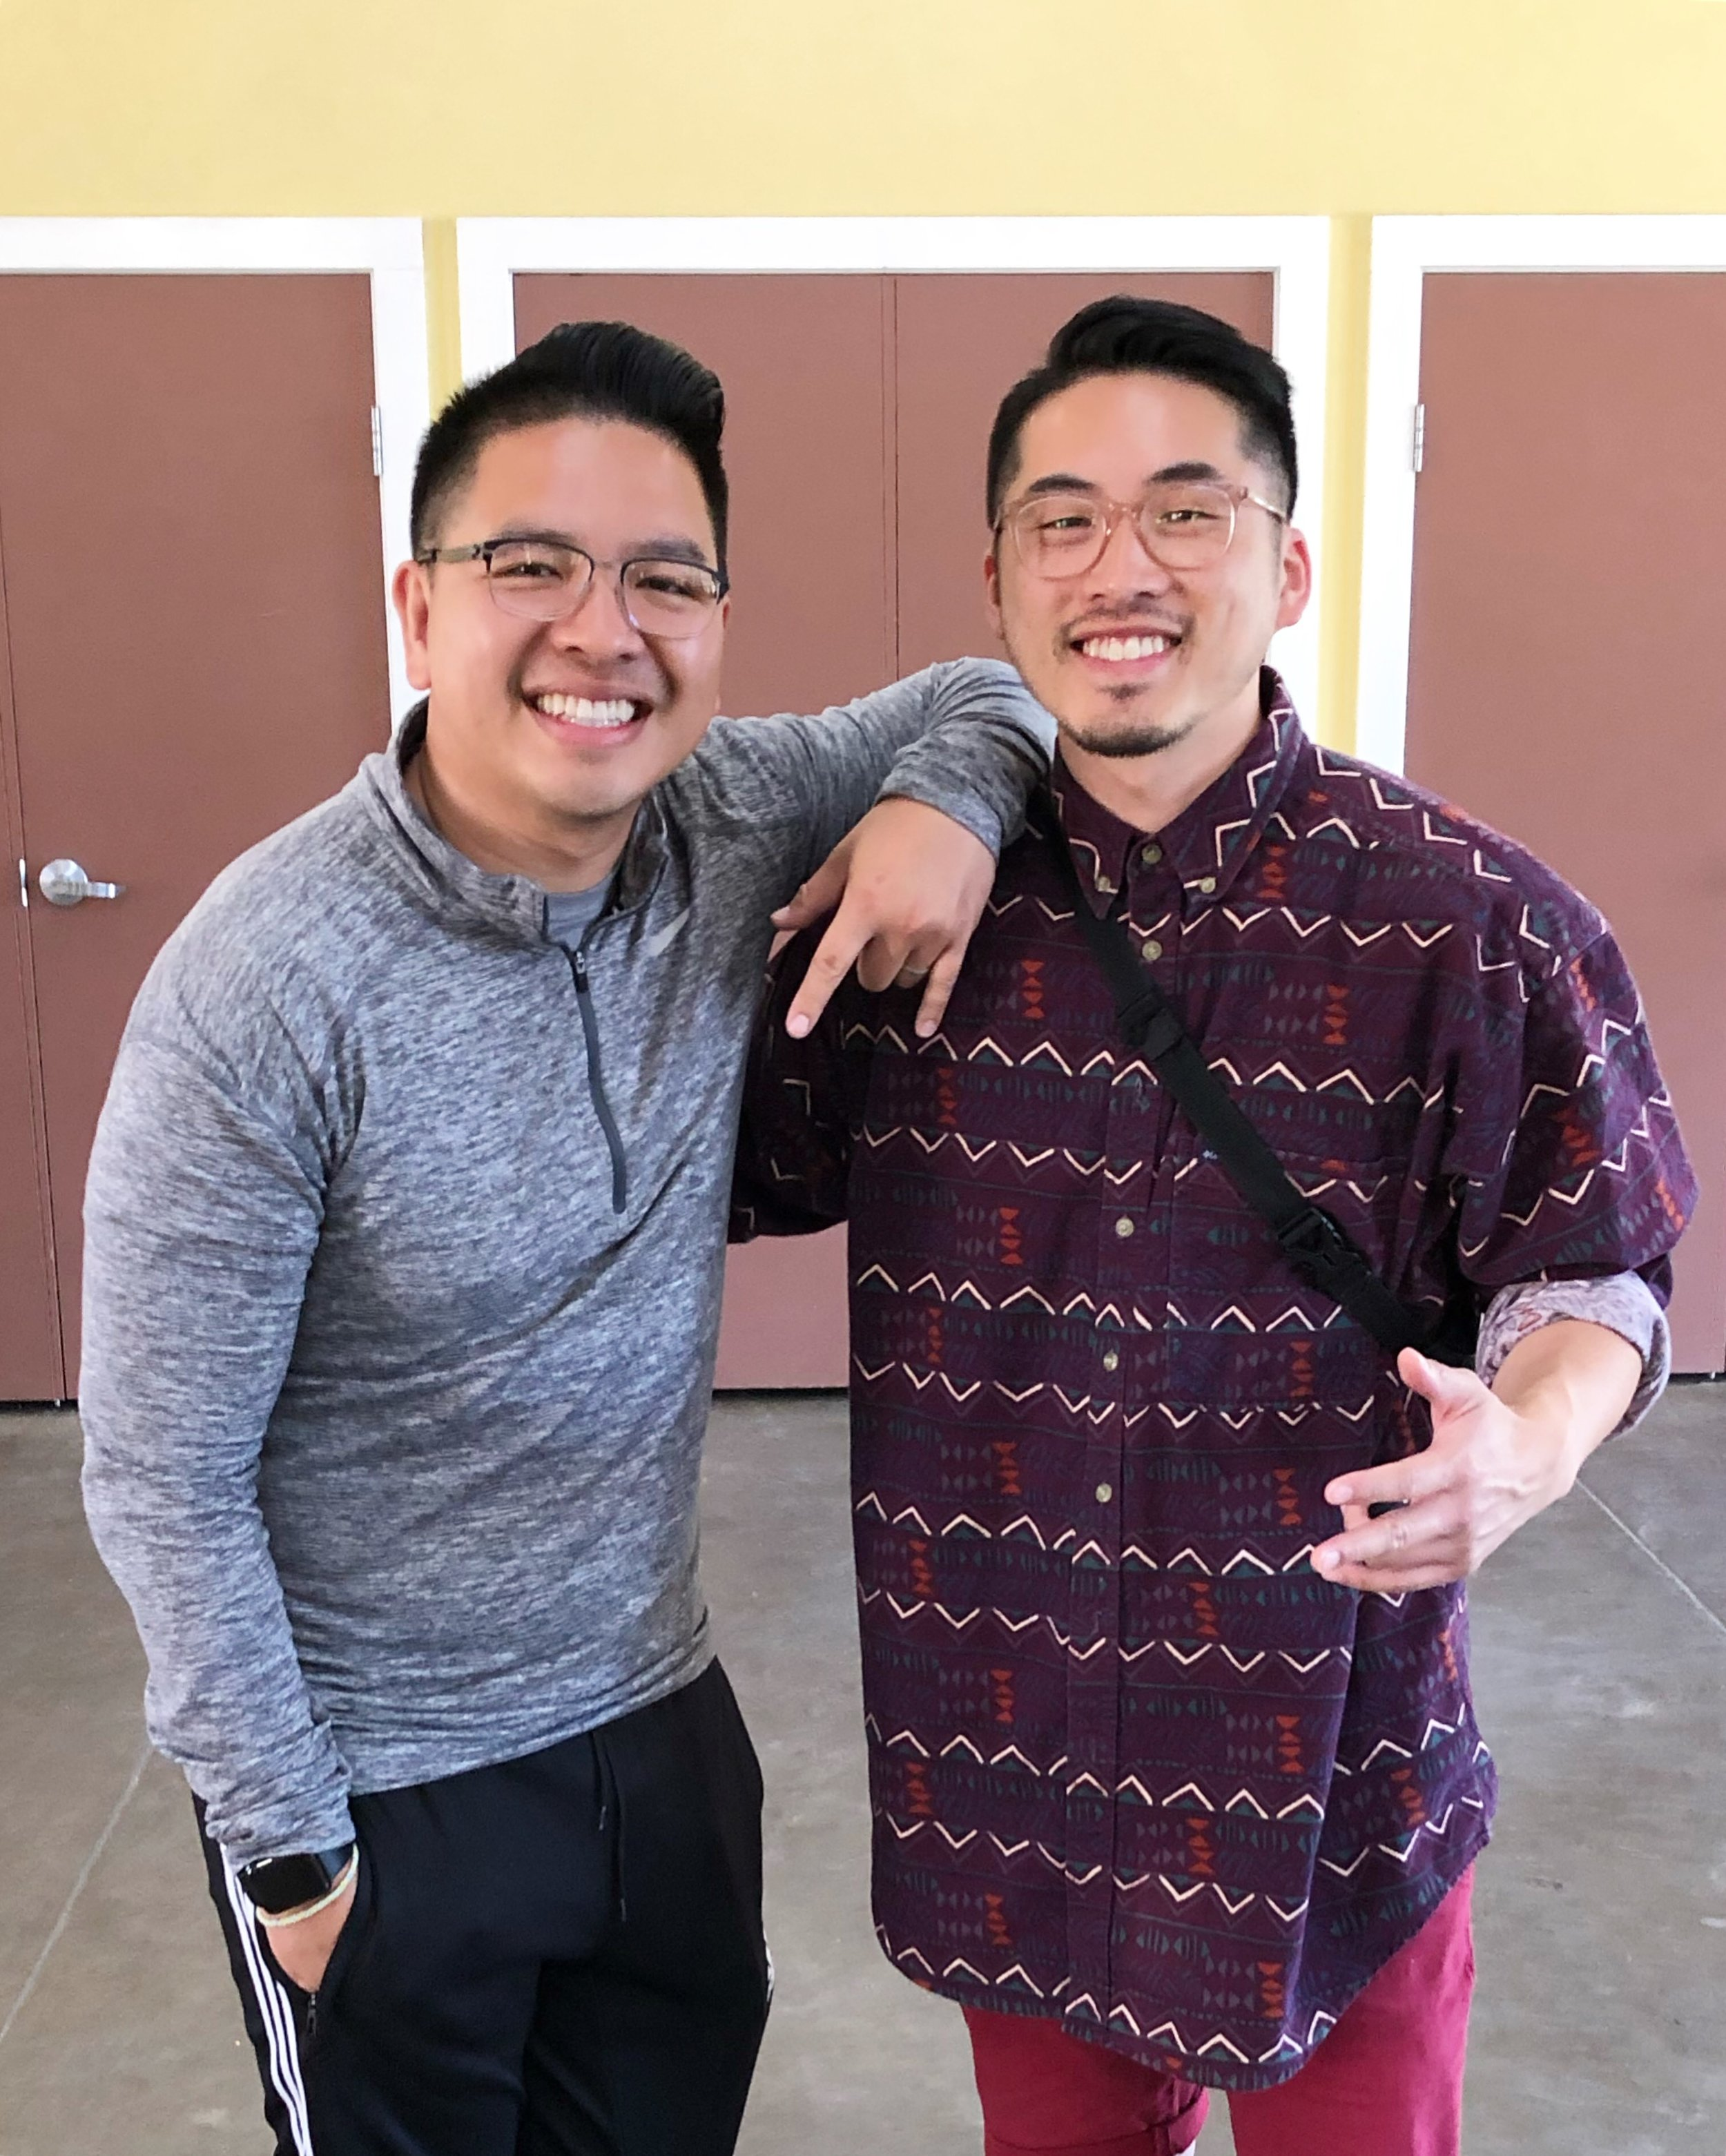 Co-Camp Directors, Quoc Du, NP at Stanford Lucile Packard Children's Hospital and Andy A. Nguyen, NP at UCSF Benioff Children's Hospital Oakland. Jul 19, 2019, Livermore, Calif.